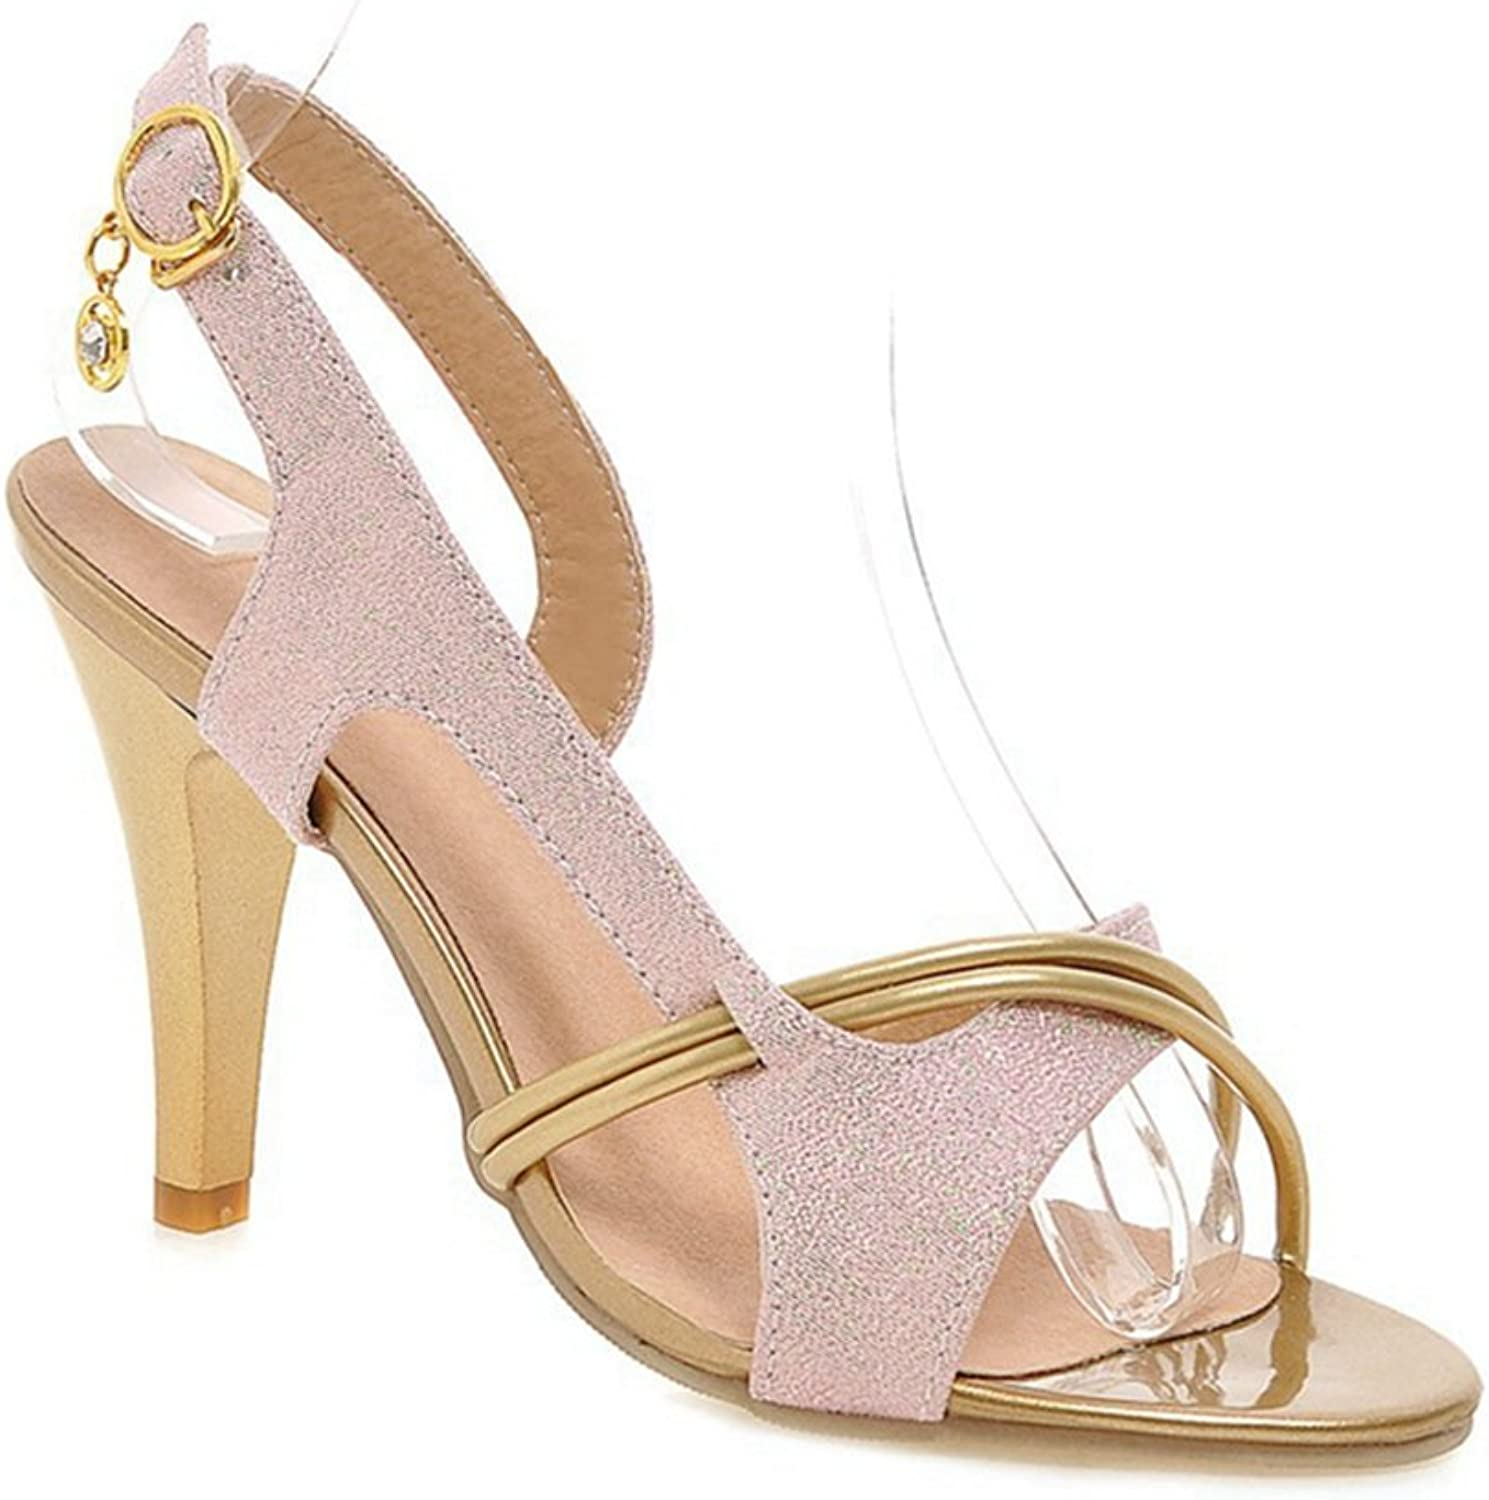 GIY Women Stiletto Sandals Pointed Cross Strappy Slingback High Heels Open Toe Wedding Party shoes